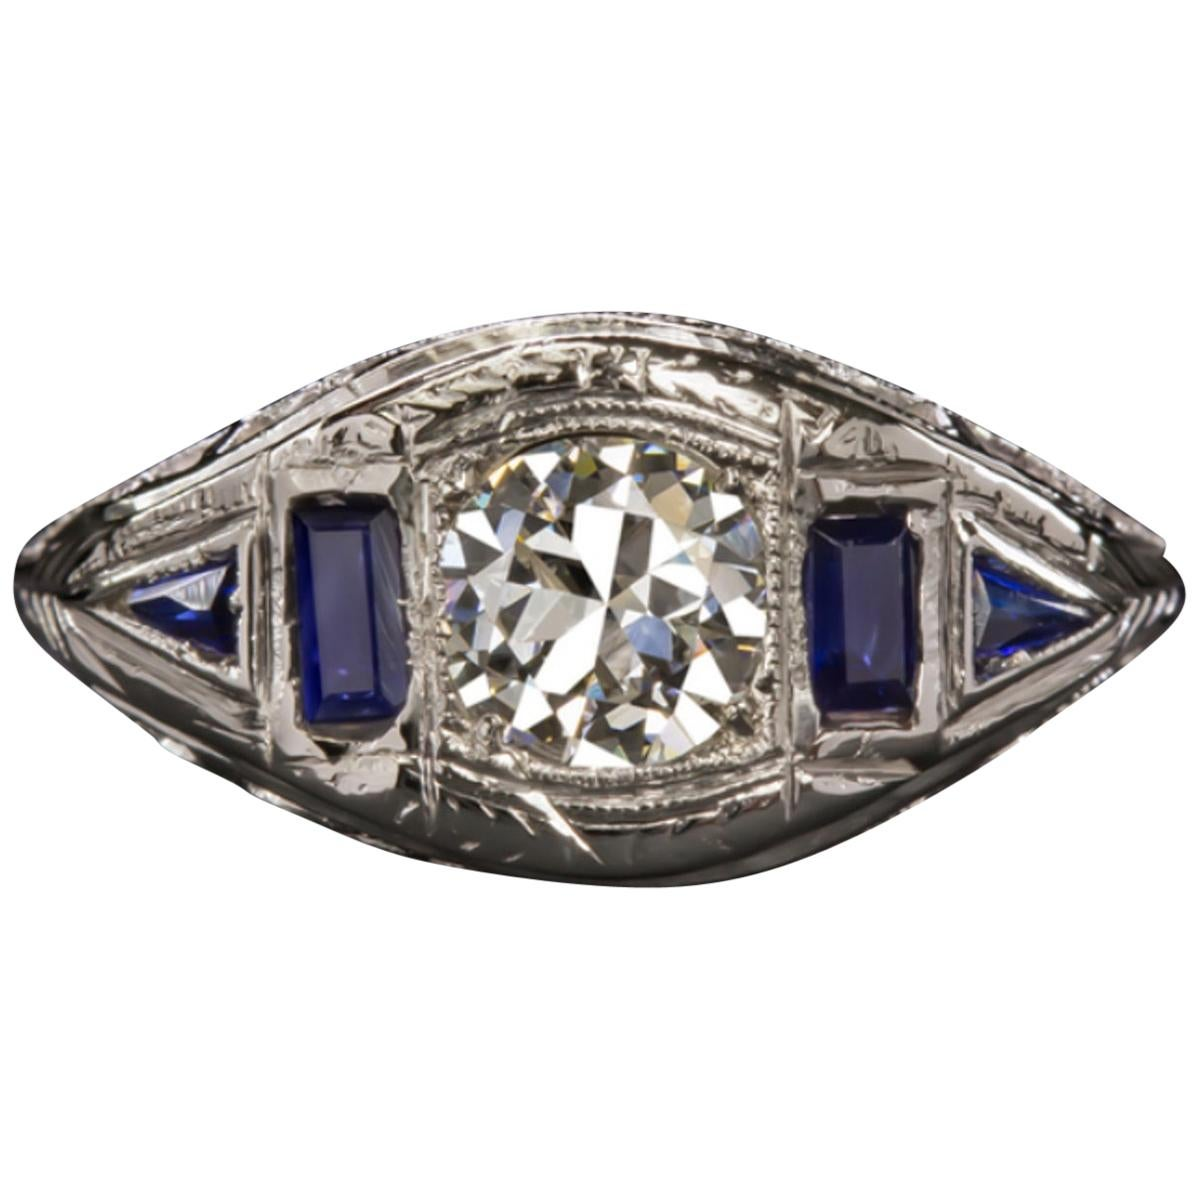 Art Deco Old Cut Round Brilliant Cut Diamond Ring